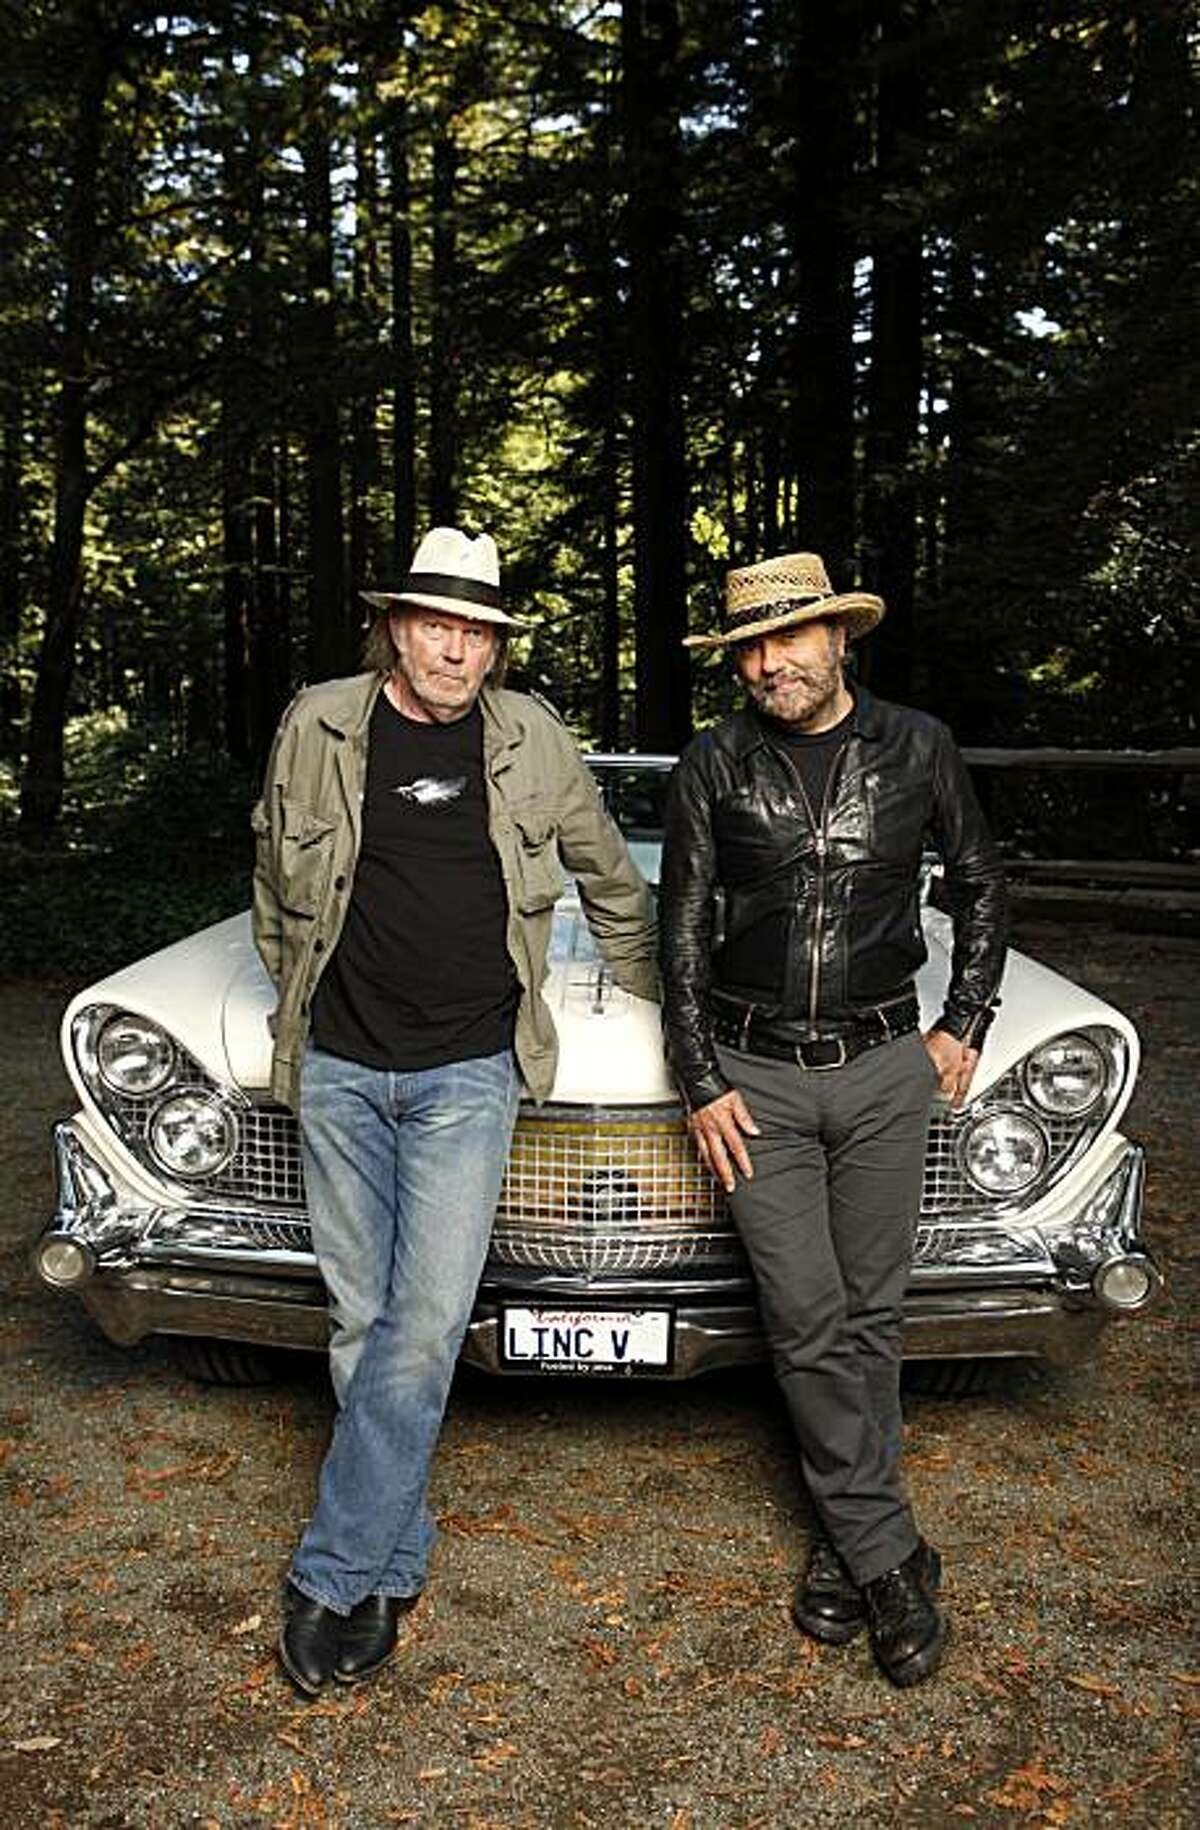 In this Sept. 10, 2010 file photo, musicians Neil Young, left, and Daniel Lanois are photographed beside Young's 1959 hybrid Lincoln Continental in Woodside, Calif. A fire at a San Francisco Bay area warehouse that stored memorabilia belonging toNeil Young started the vintage car the singer had converted into a hybrid vehicle. Belmont-San Carlos Fire Marshal Jim Palisi told the San Mateo County Times the Nov. 9 fire began in Young's 1959 Lincoln Continental and then spread to the nearby warehouse. Young had converted the car to run on electric batteries and a biodiesel-powered generator as part of the LincVolt project.